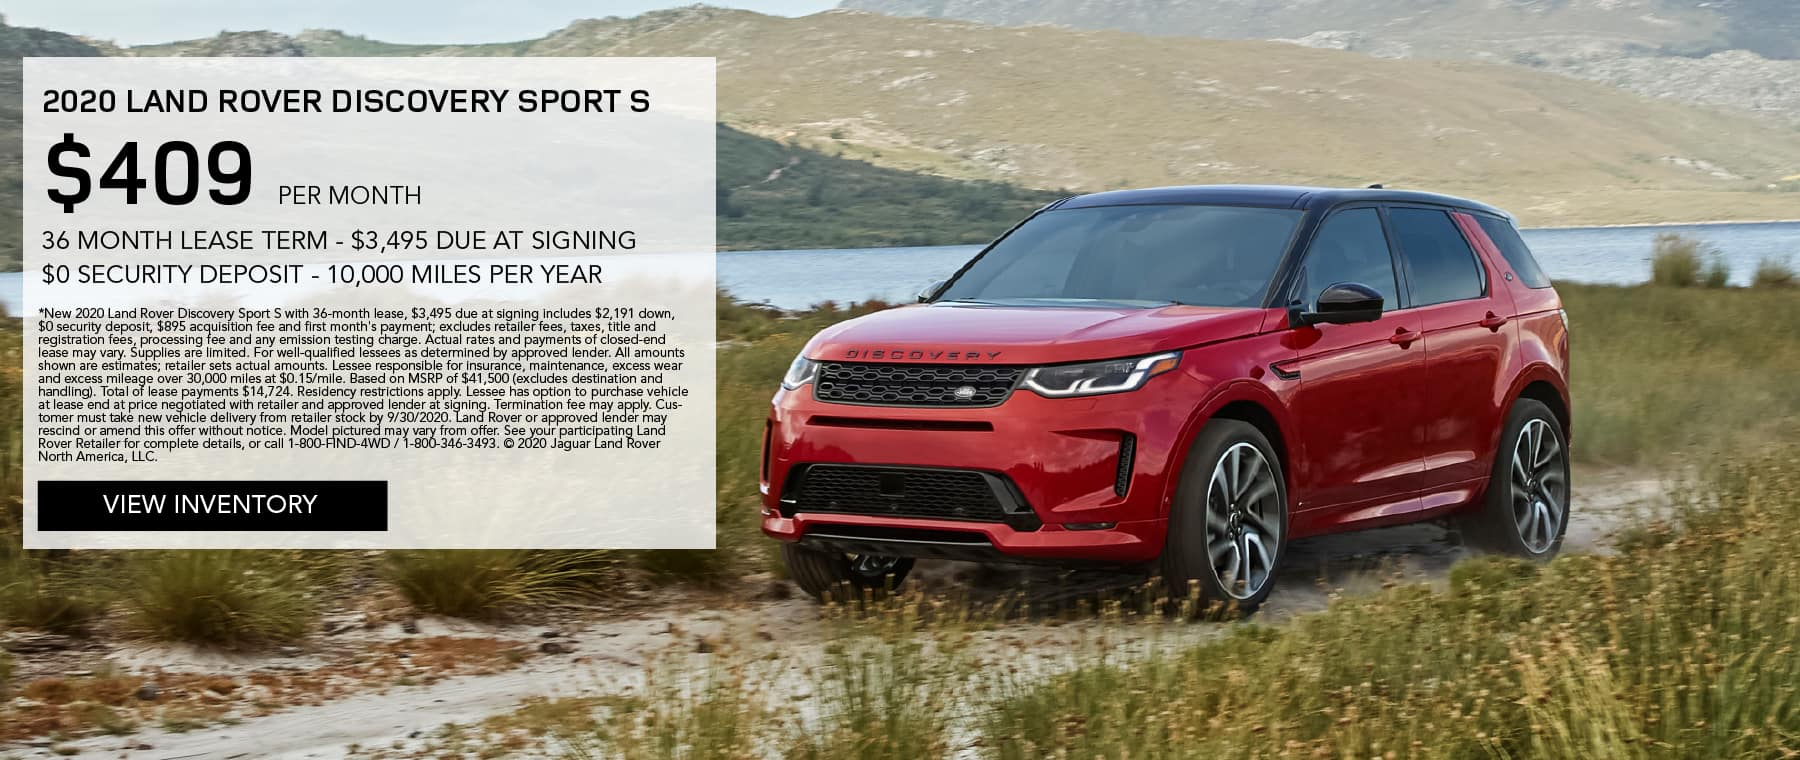 2020 LAND ROVER DISCOVERY SPORT S. $409 PER MONTH. 36 MONTH LEASE TERM. $3,495 CASH DUE AT SIGNING. $0 SECURITY DEPOSIT. 10,000 MILES PER YEAR. EXCLUDES RETAILER FEES, TAXES, TITLE AND REGISTRATION FEES, PROCESSING FEE AND ANY EMISSION TESTING CHARGE. ENDS 9/30/2020. RED LAND ROVER DISCOVERY SPORT DRIVING THROUGH GRASS IN MOUNTAINS.